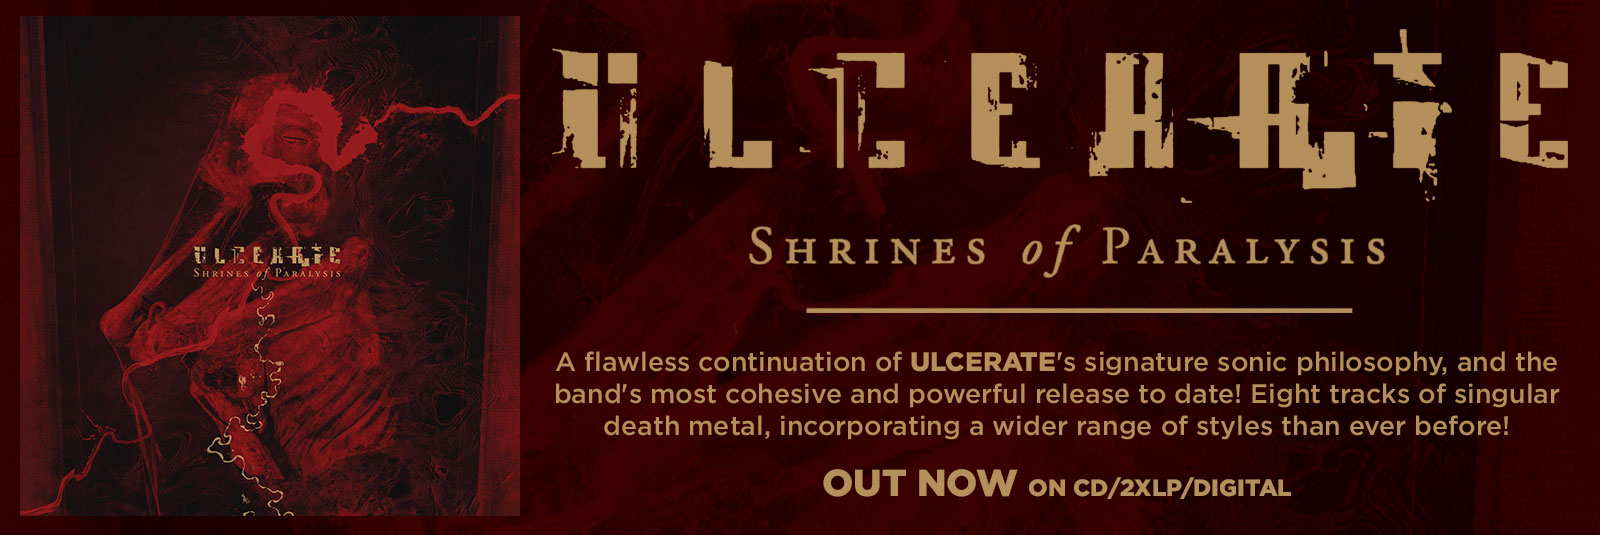 ulcerate-shrines-of-paralysis-ulcerate-new-album-2016